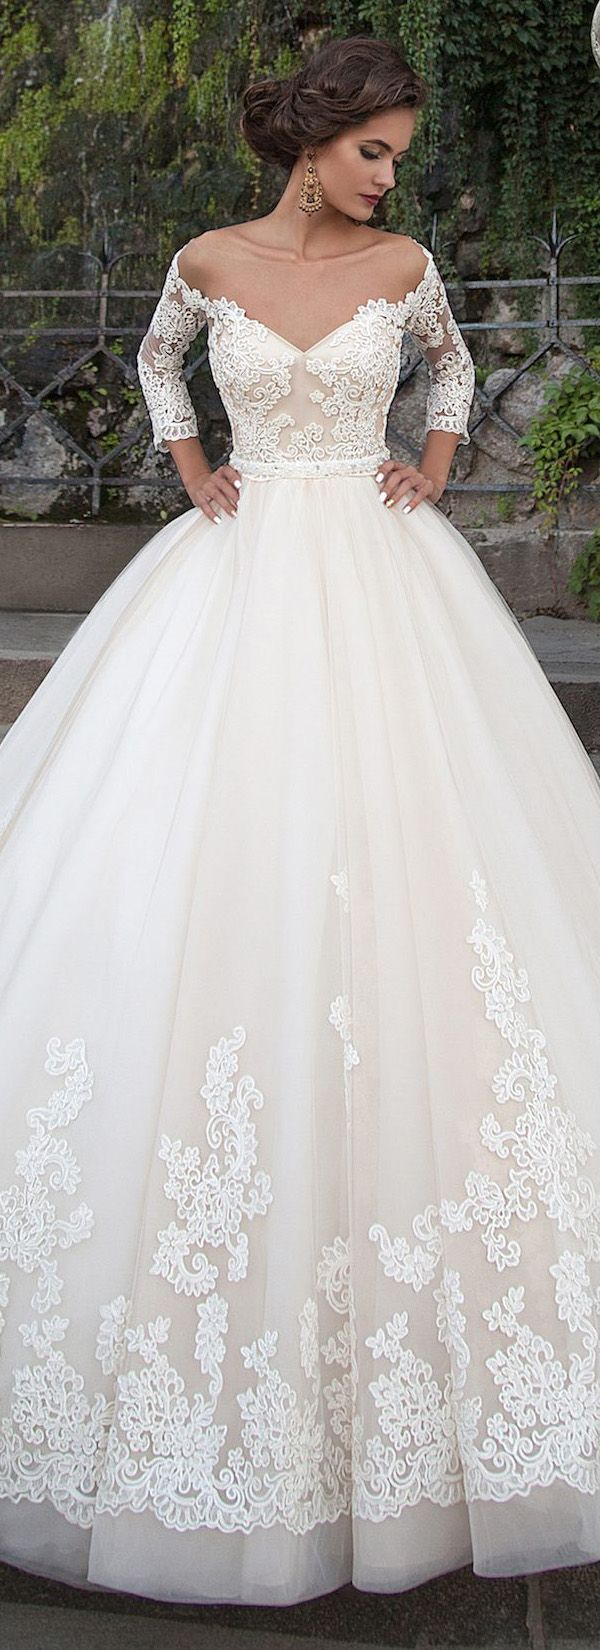 Best 25  Mexican wedding dresses ideas on Pinterest | Mexican ...